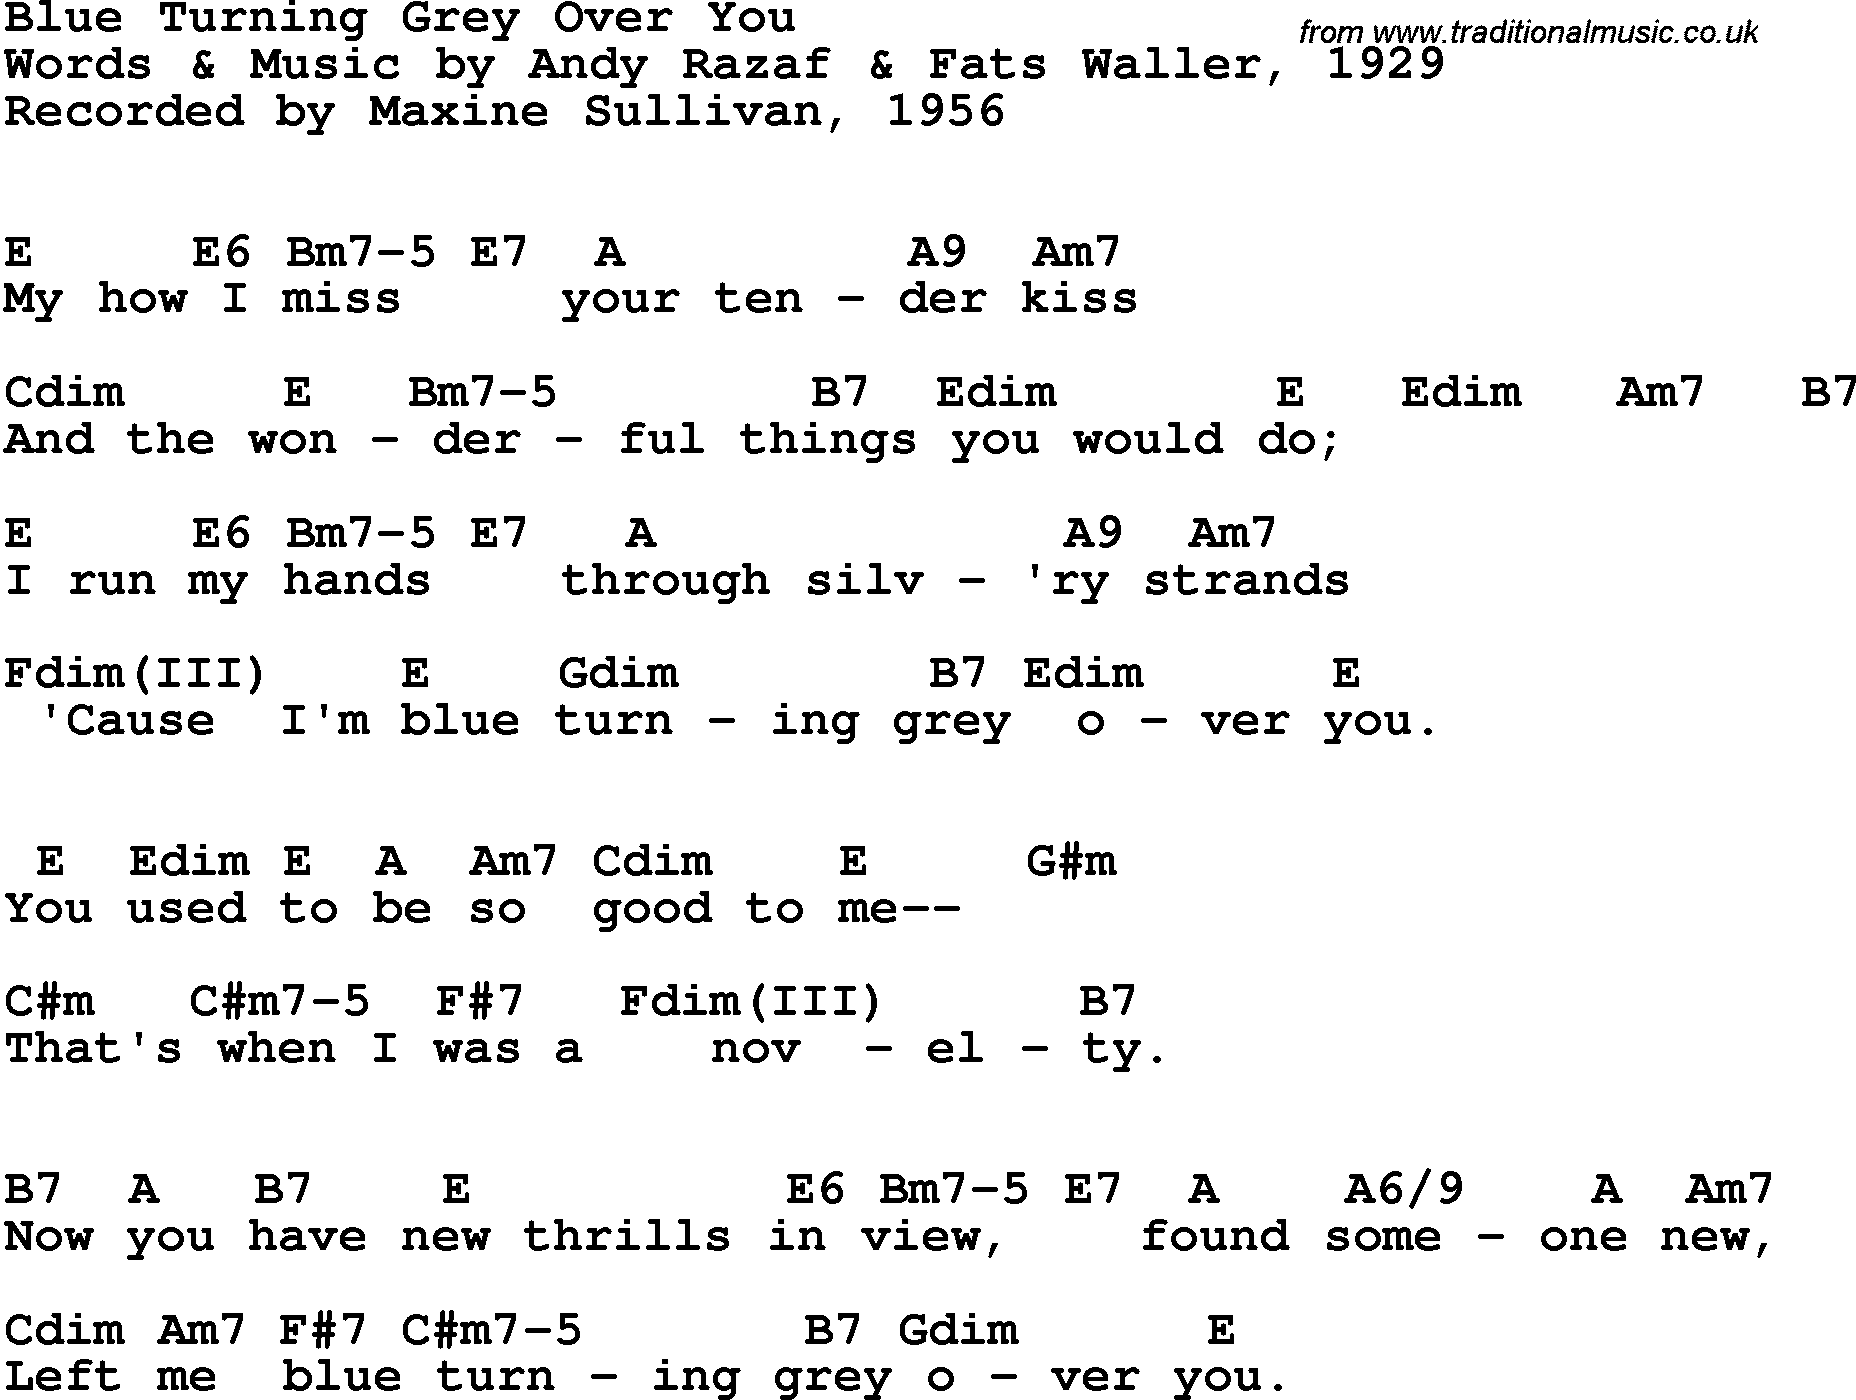 Song lyrics with guitar chords for Blue Turning Grey Over You - Maxine Sullivan, 1956